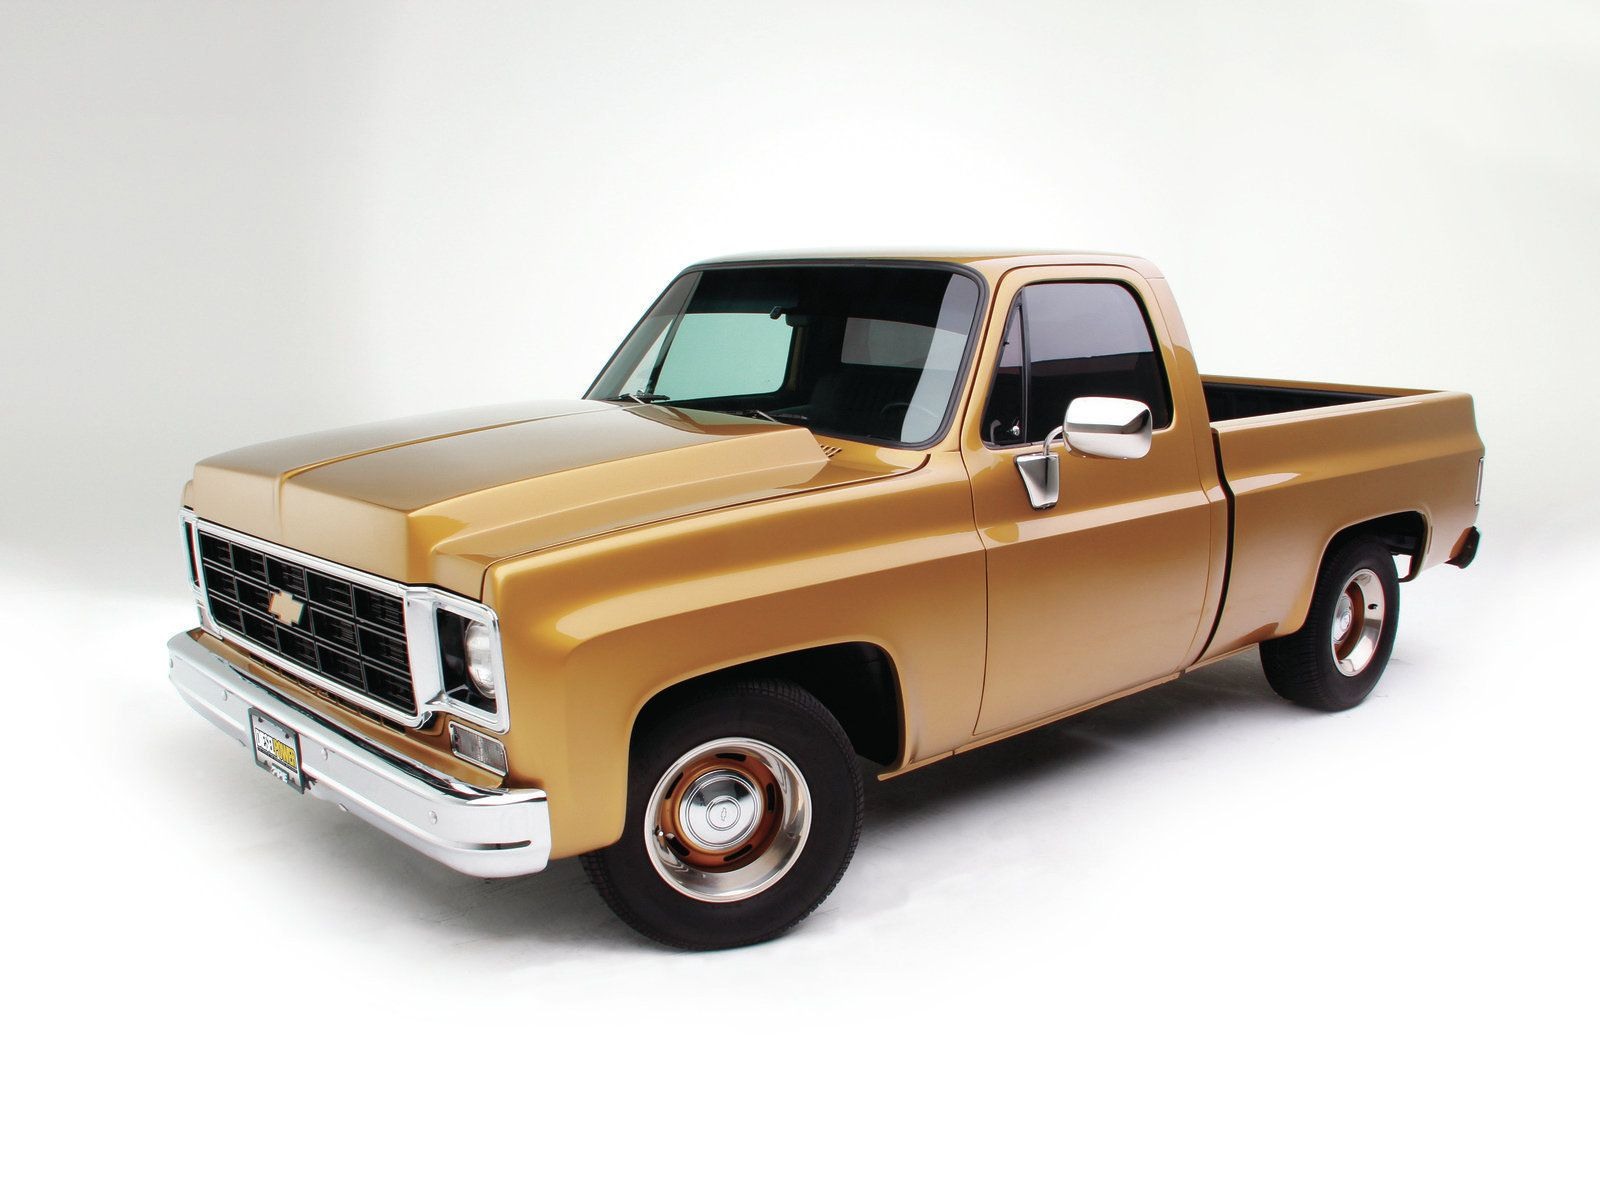 small resolution of 76 custom c10 1976 chevy c10 the ultimate swap duramax engine photo 4